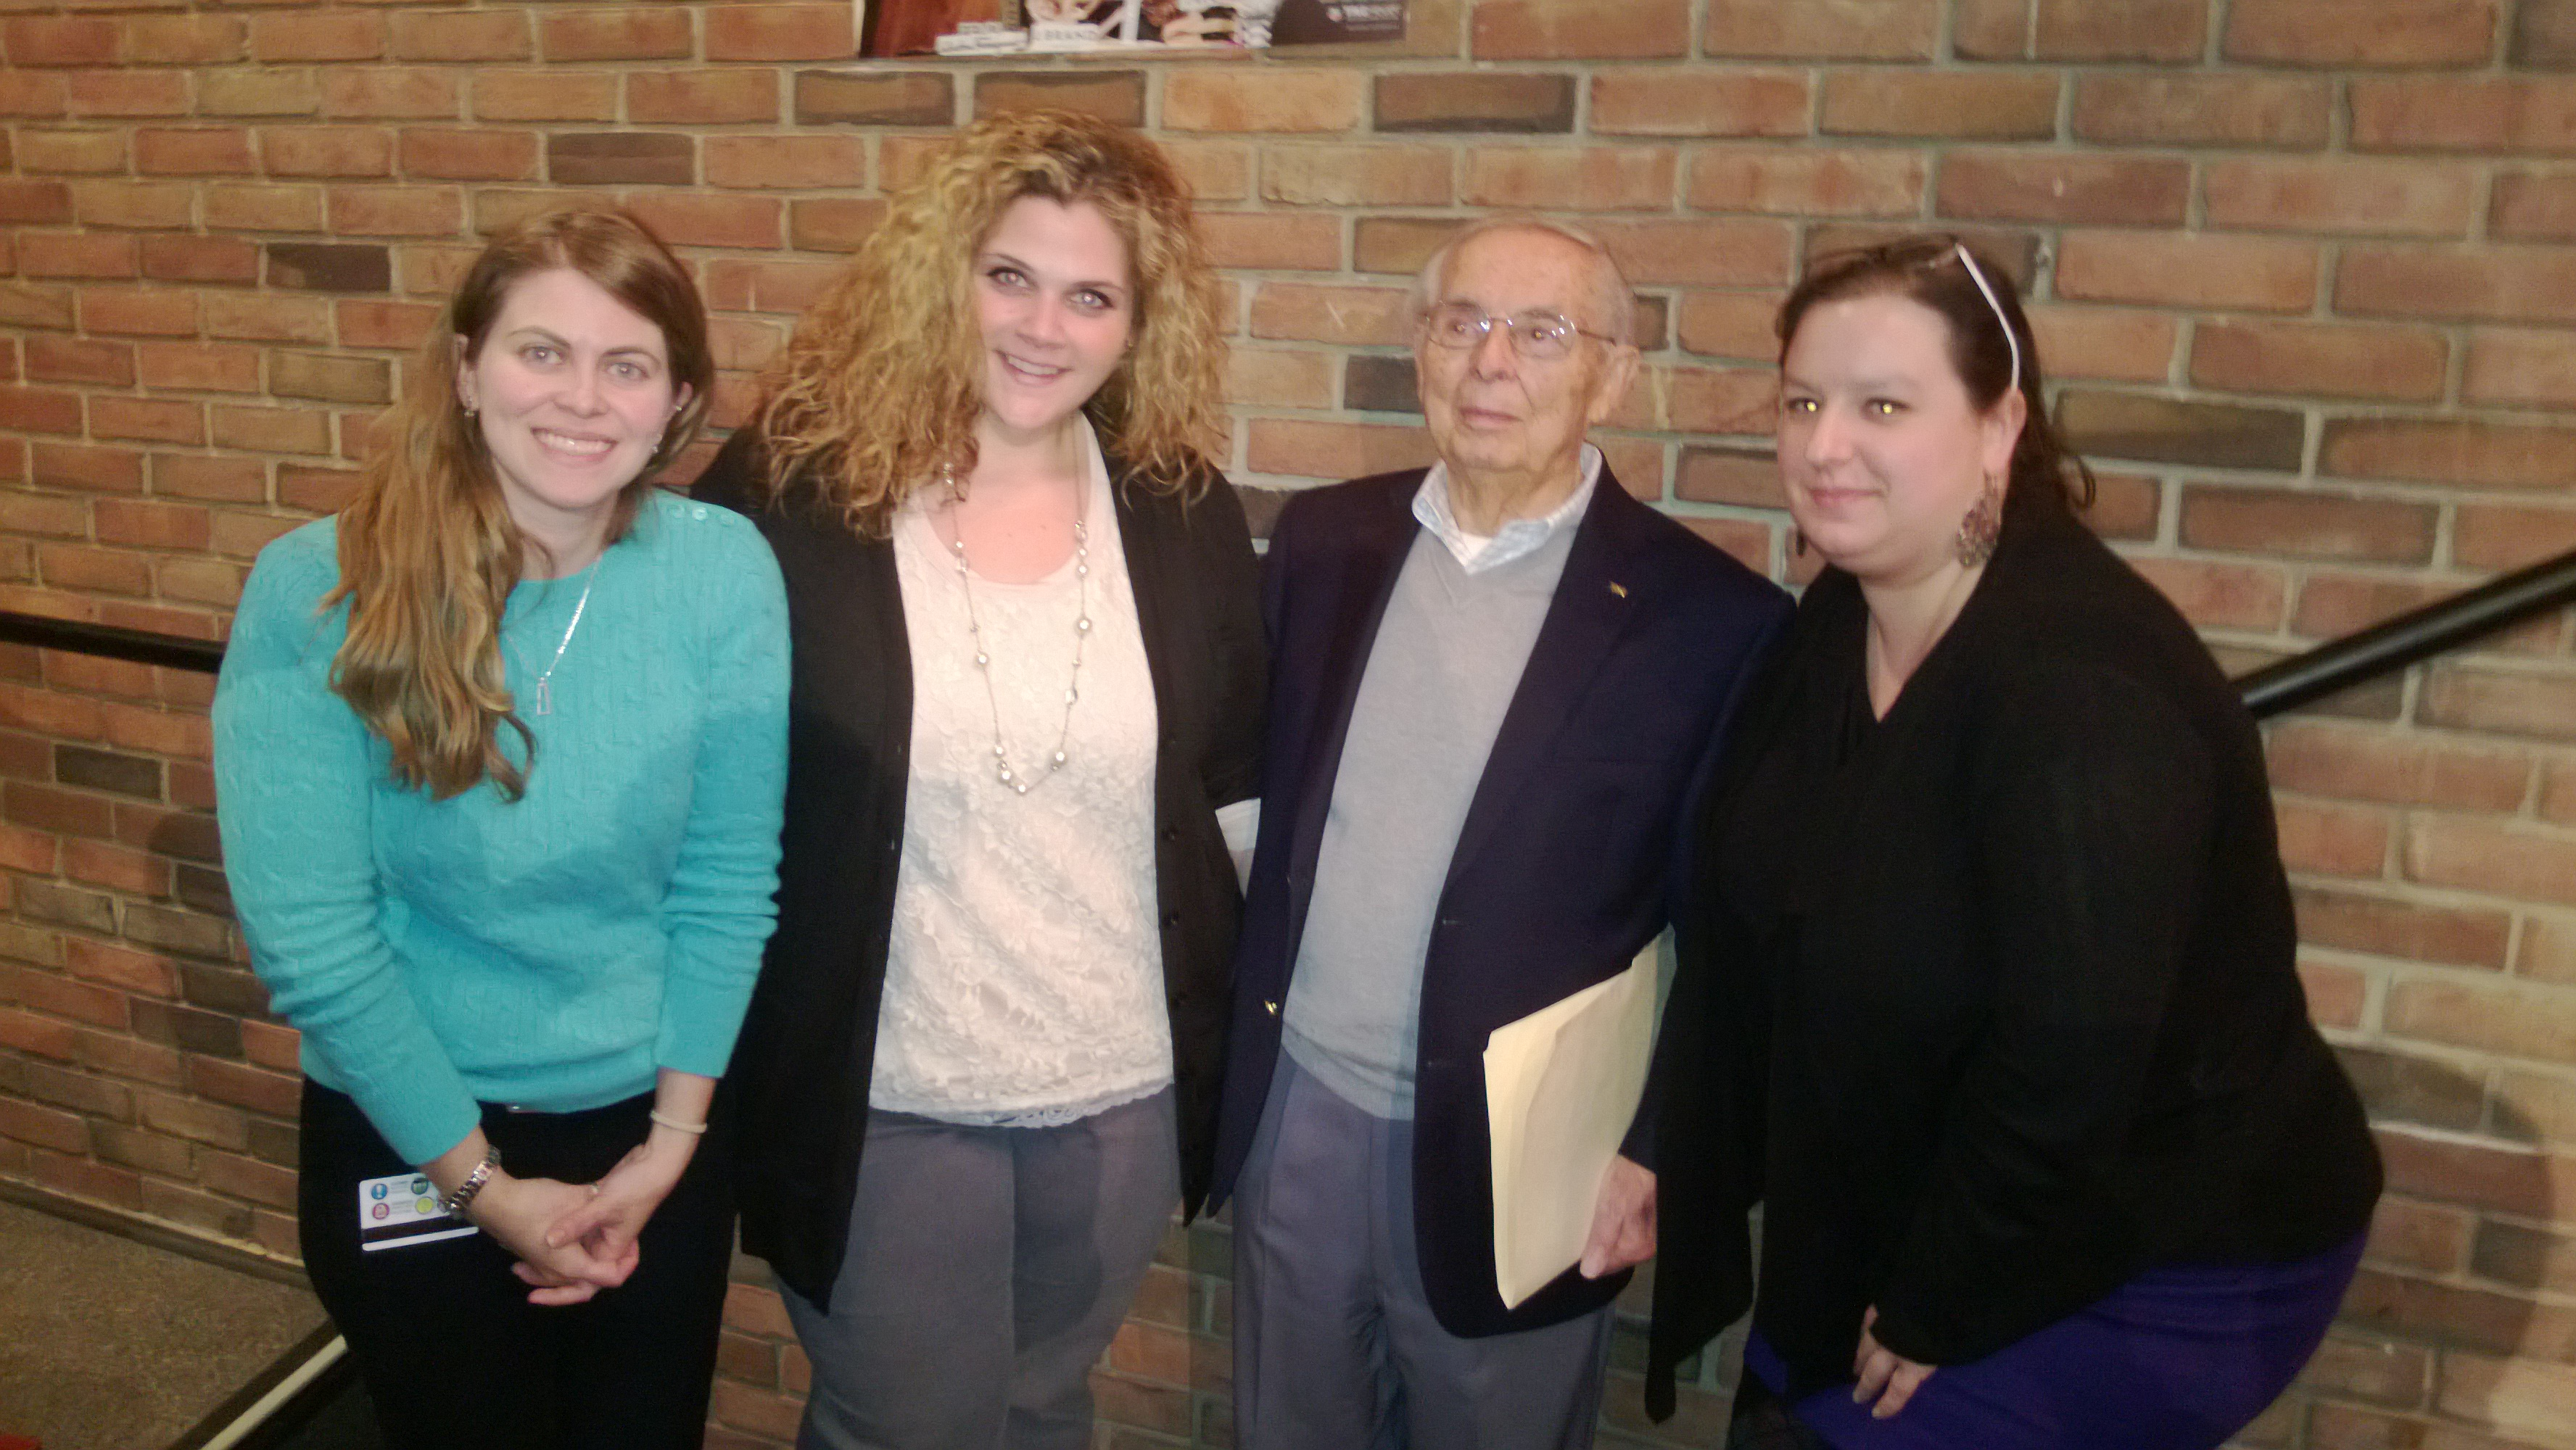 Picture of Holocaust survivor Jack Zaifman at Hunterdon Central High School with school teachers on 03/26/14